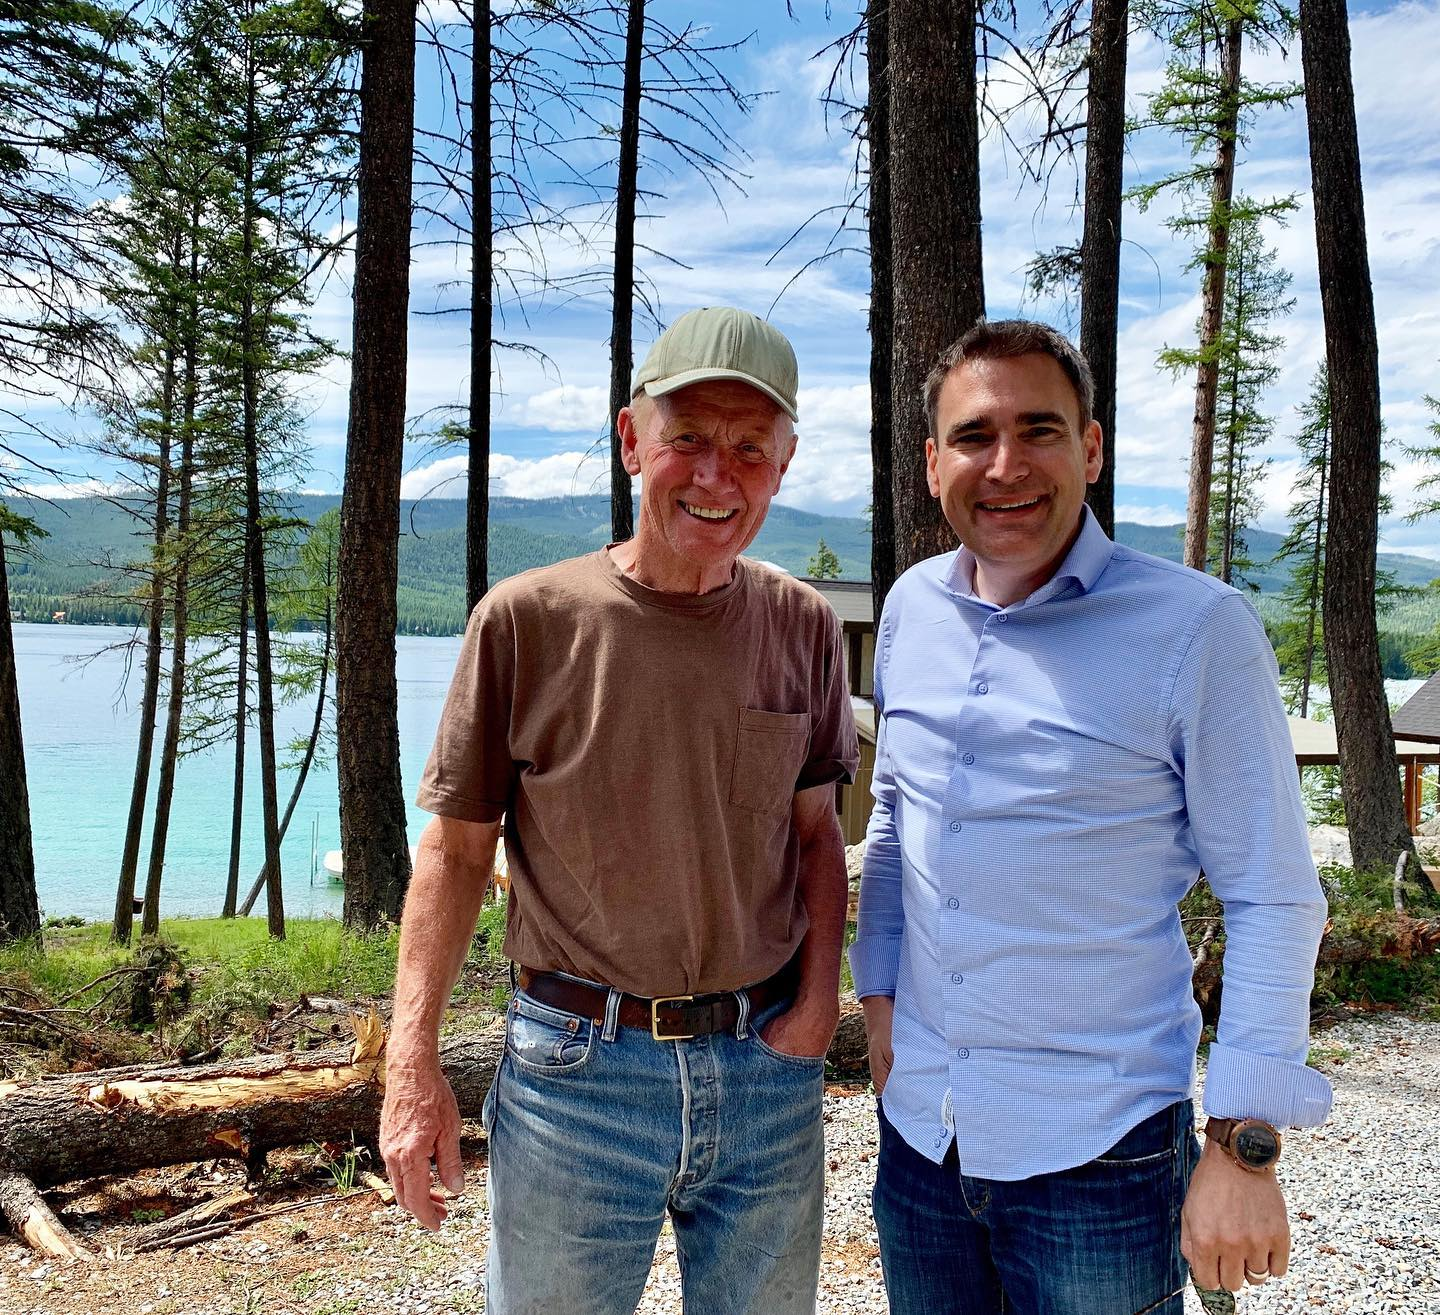 Our job-site was intriguing enough that today we got a visit from Uncle Jim whitefish custom home builder